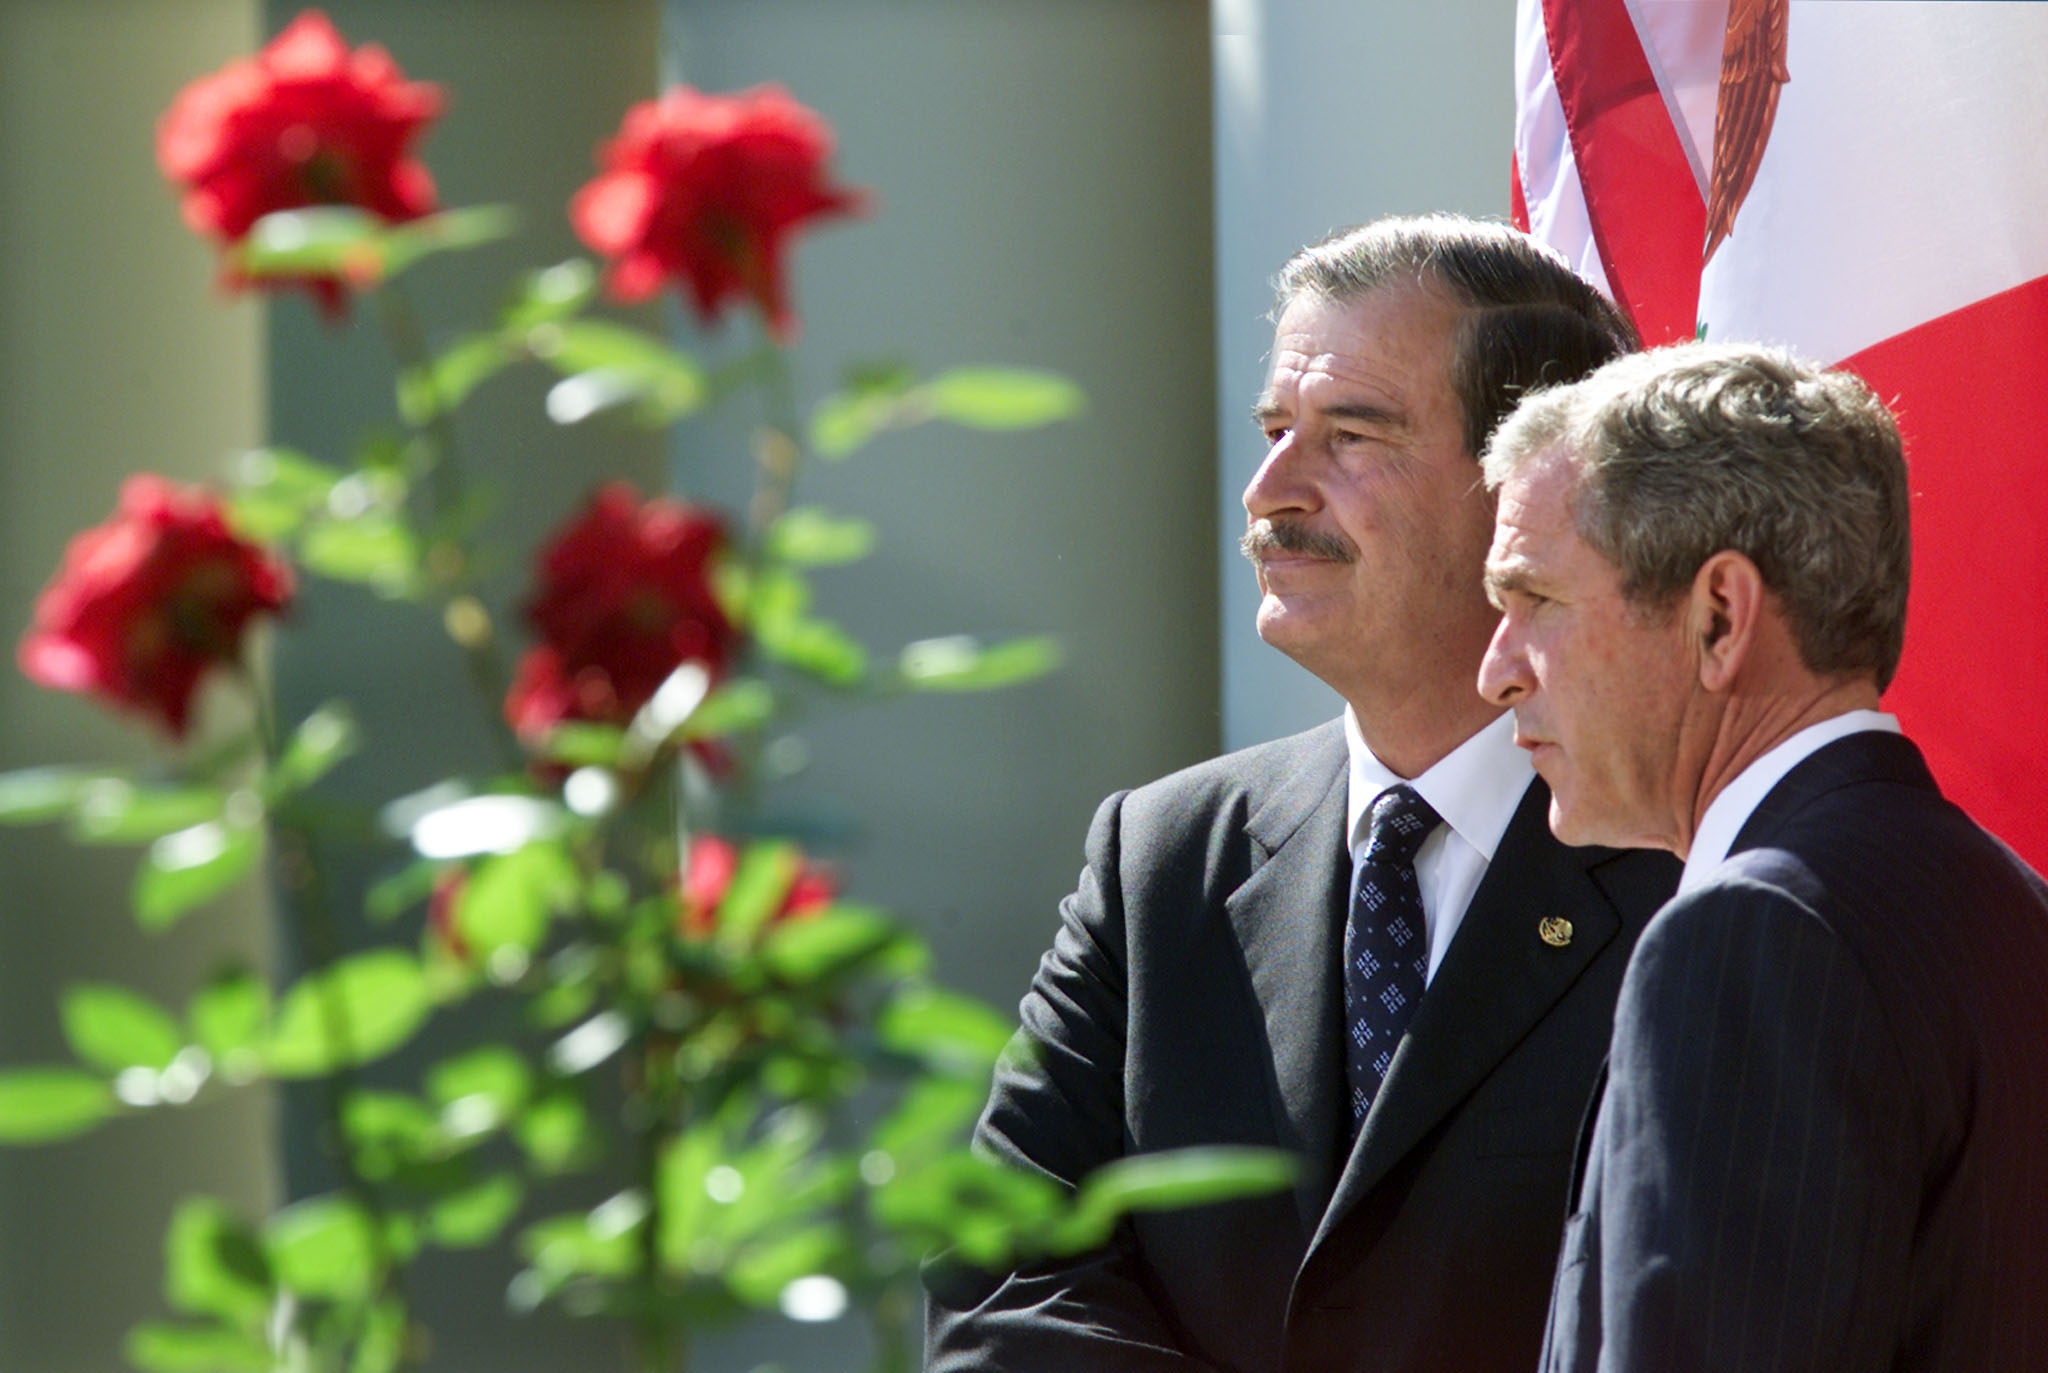 U.S. President George W. Bush (R) stands with Mexican President VicenteFox as they address the media in the Rose Garden at the White House,October 4, 2001. Fox came to the White House to show support for theUnited States response to the attacks in New York and Washington.REUTERS/Gary HershornGMH/ME